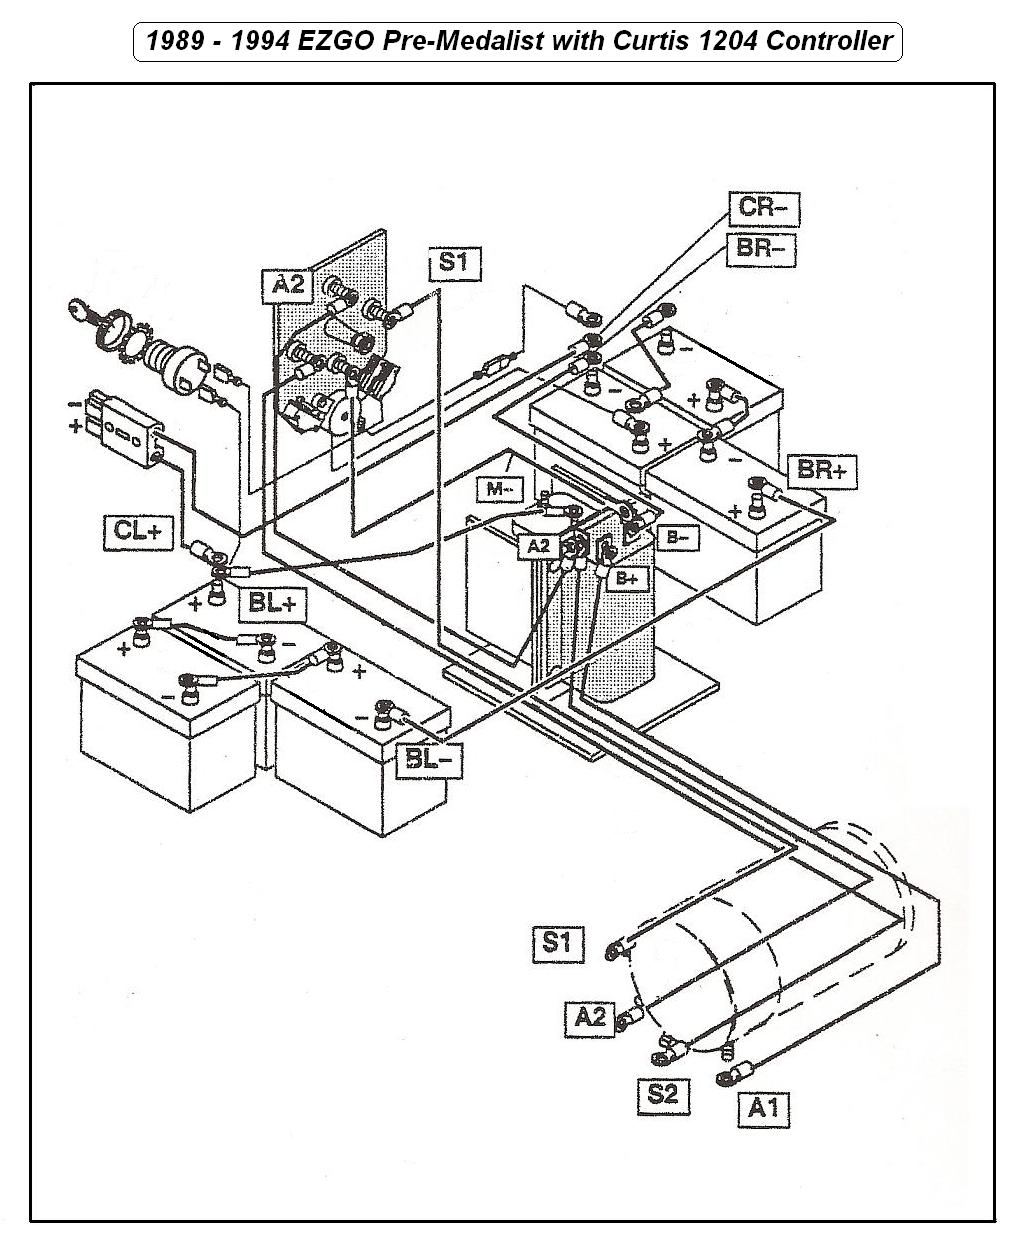 ez go golf cart wiring diagram gas engine Download-Ez Go Textron Wiring Diagram kuwaitigenius 20-c